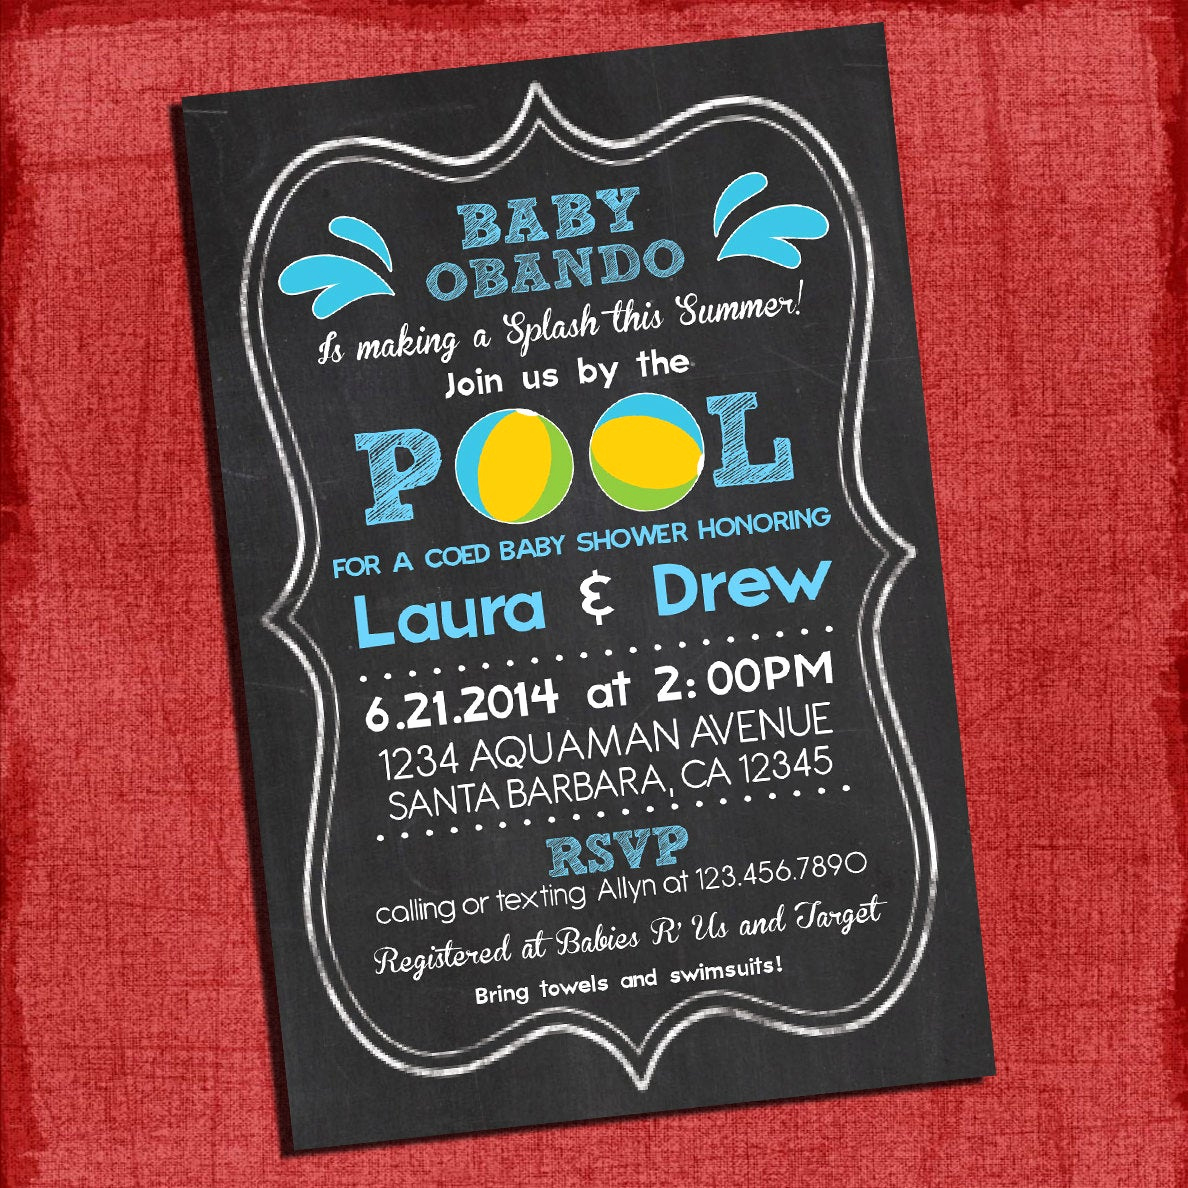 Coed Baby Shower Invitation Templates Elegant Printable Pool Party Coed Baby Shower Chalkboard Style 4x6 or